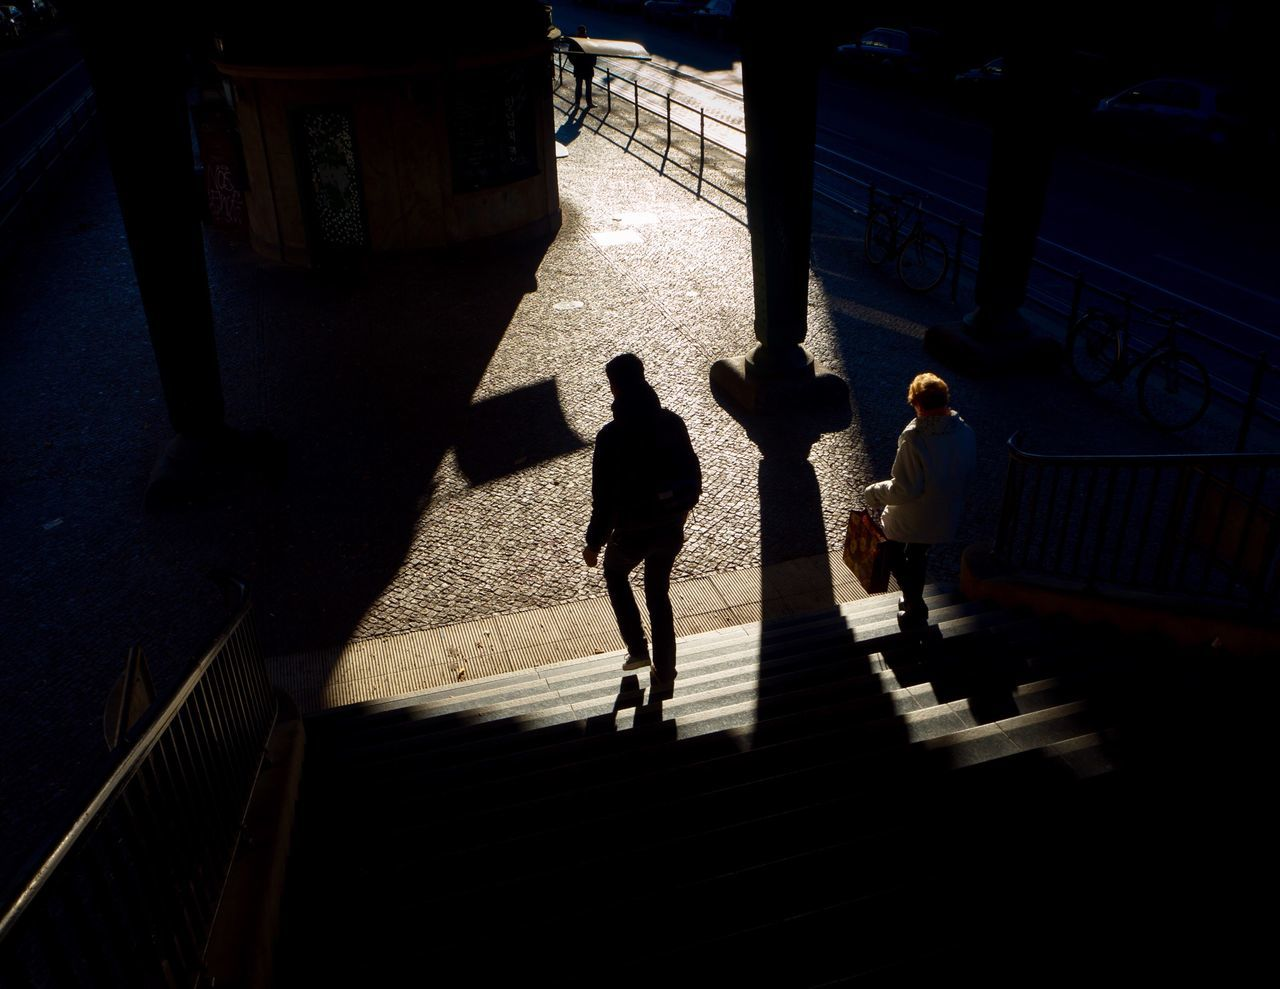 My Eyes My Berlin Walking Shadow Urban Geometry Urban Exploration Best Of Stairways People You & You Silhouette Street Photography Full Length Architecture The City Light Stillness In Time Film Fine Art Real People Still Life Cityscapes EyeEm Masterclass EyeEm Best Shots Cityscape City